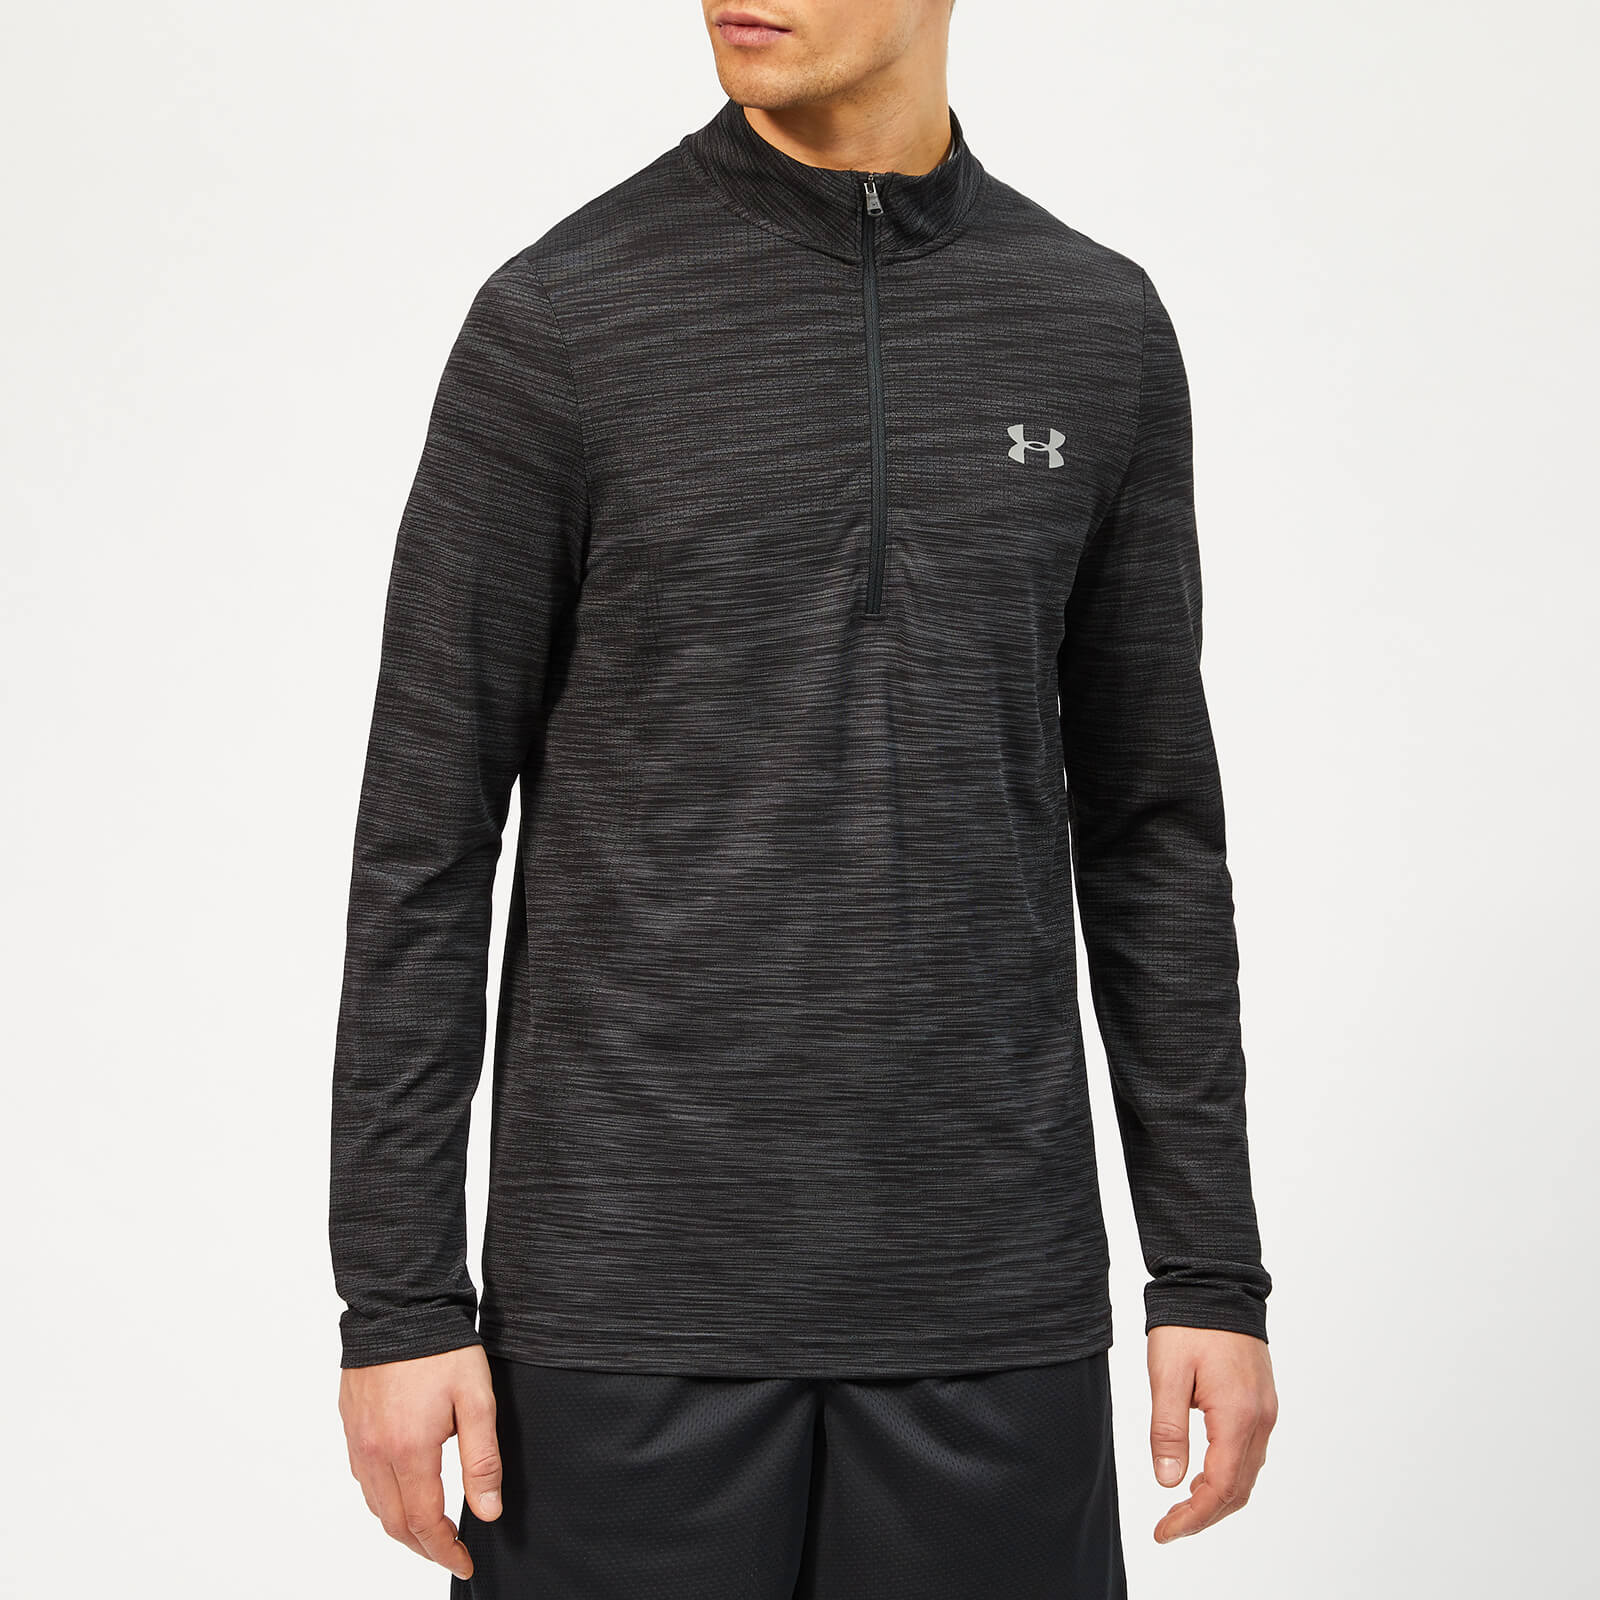 792dff14b Under Armour Men's Vanish Seamless 1/2 Zip Top - Black Sports & Leisure |  TheHut.com